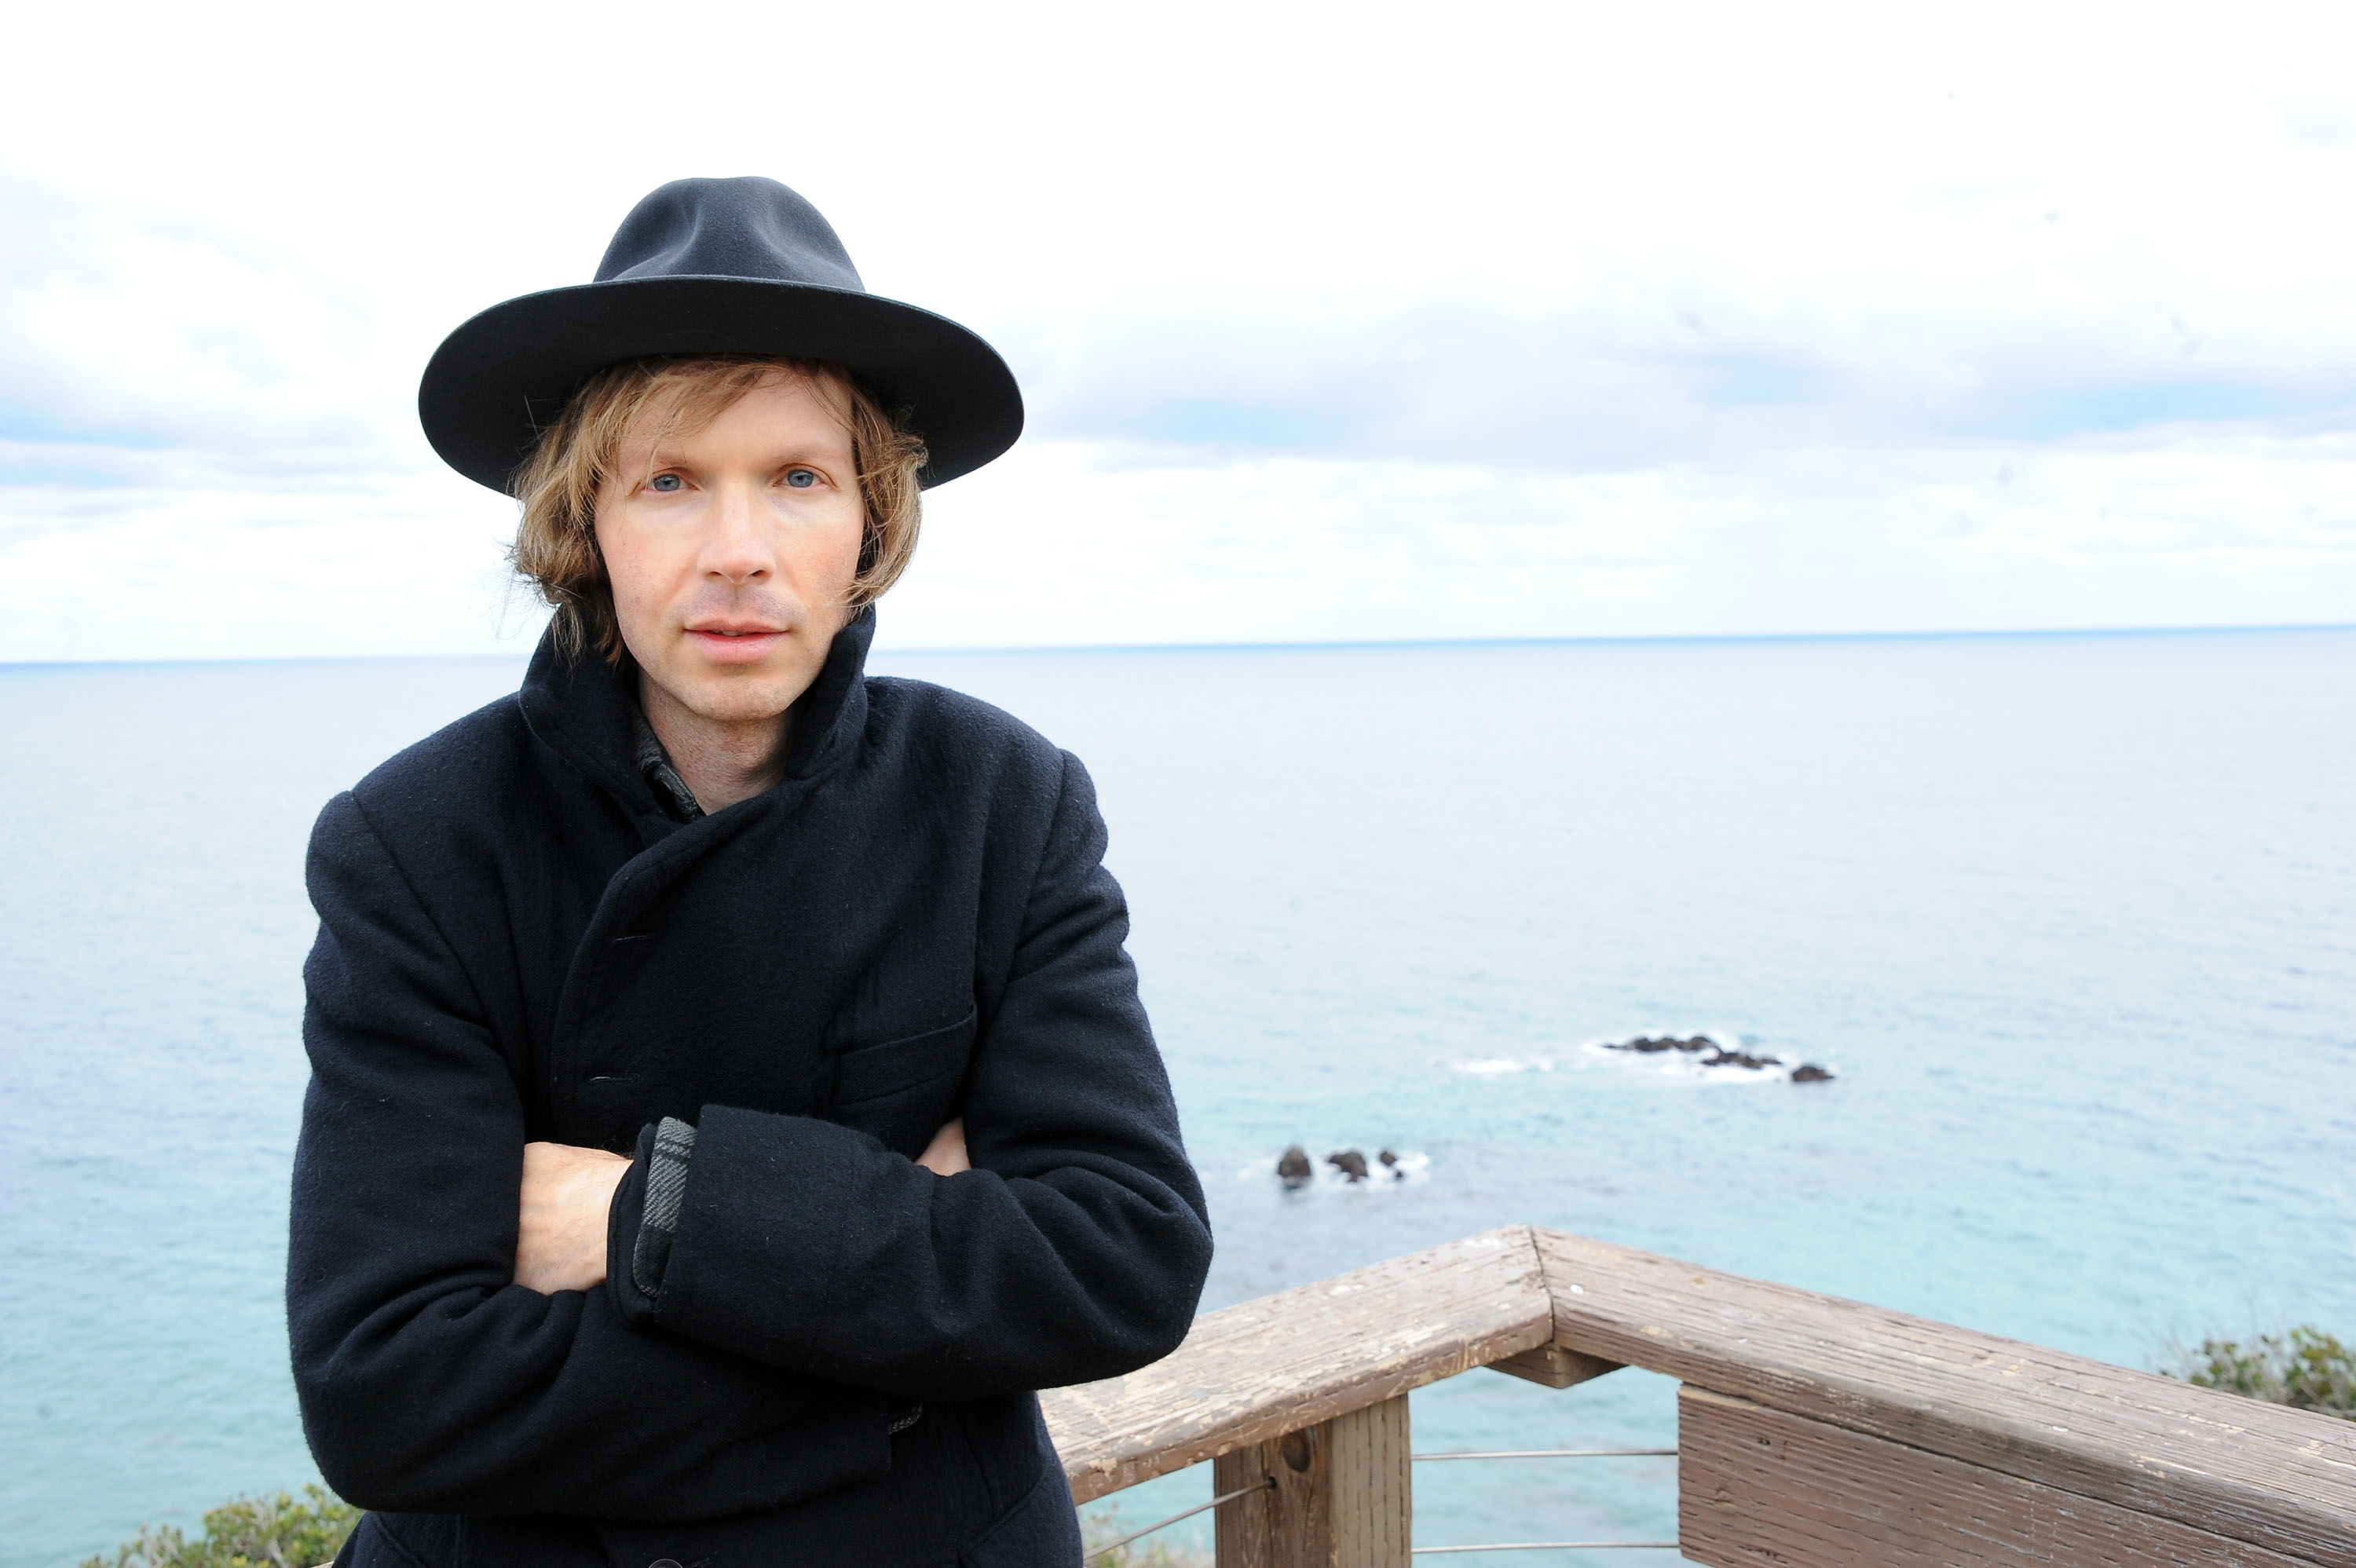 Beck - Height, Weight, Age